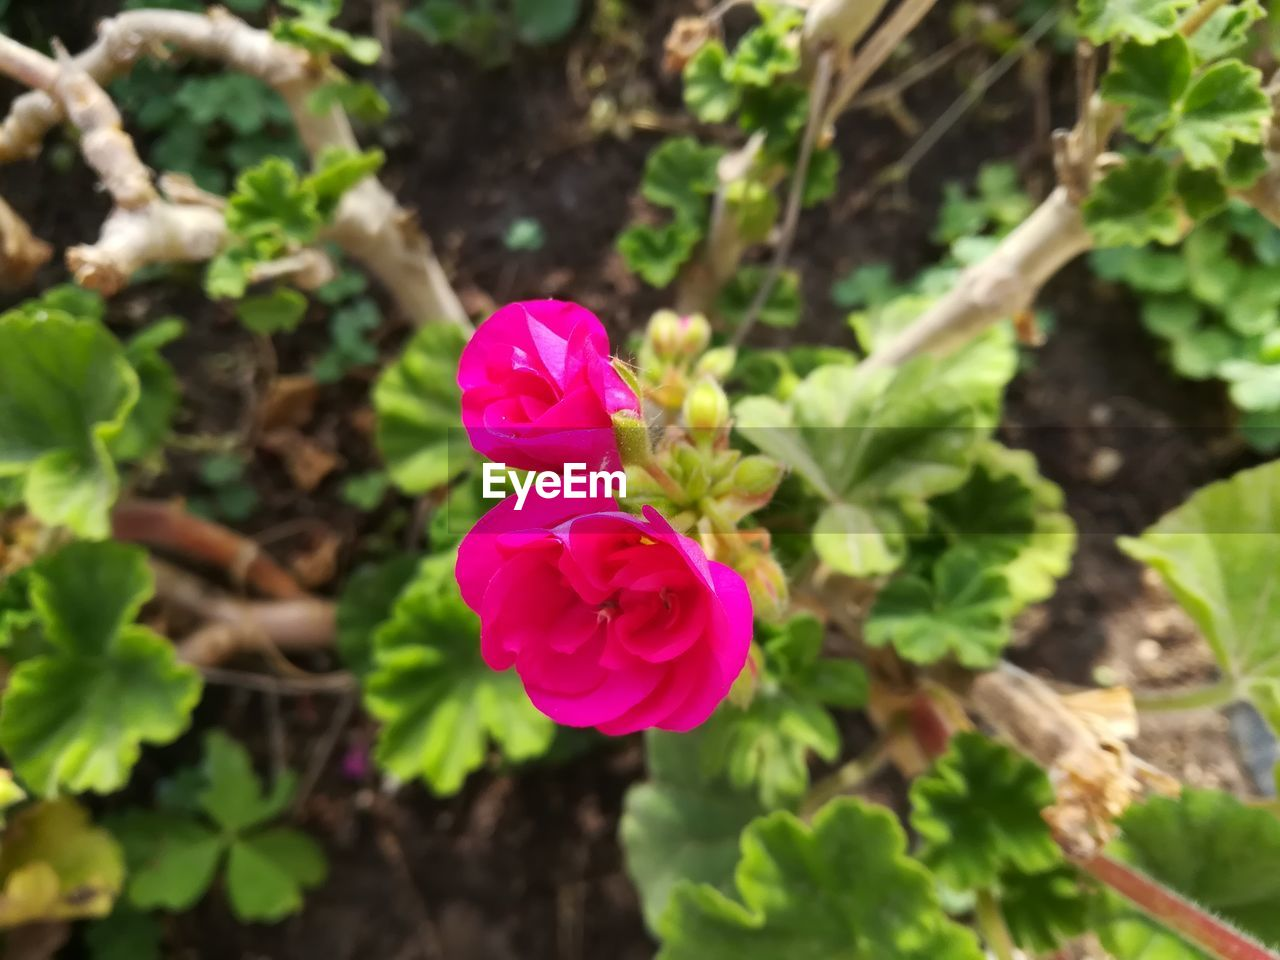 plant, beauty in nature, flowering plant, flower, vulnerability, fragility, freshness, growth, petal, pink color, flower head, close-up, inflorescence, nature, leaf, day, plant part, no people, focus on foreground, high angle view, outdoors